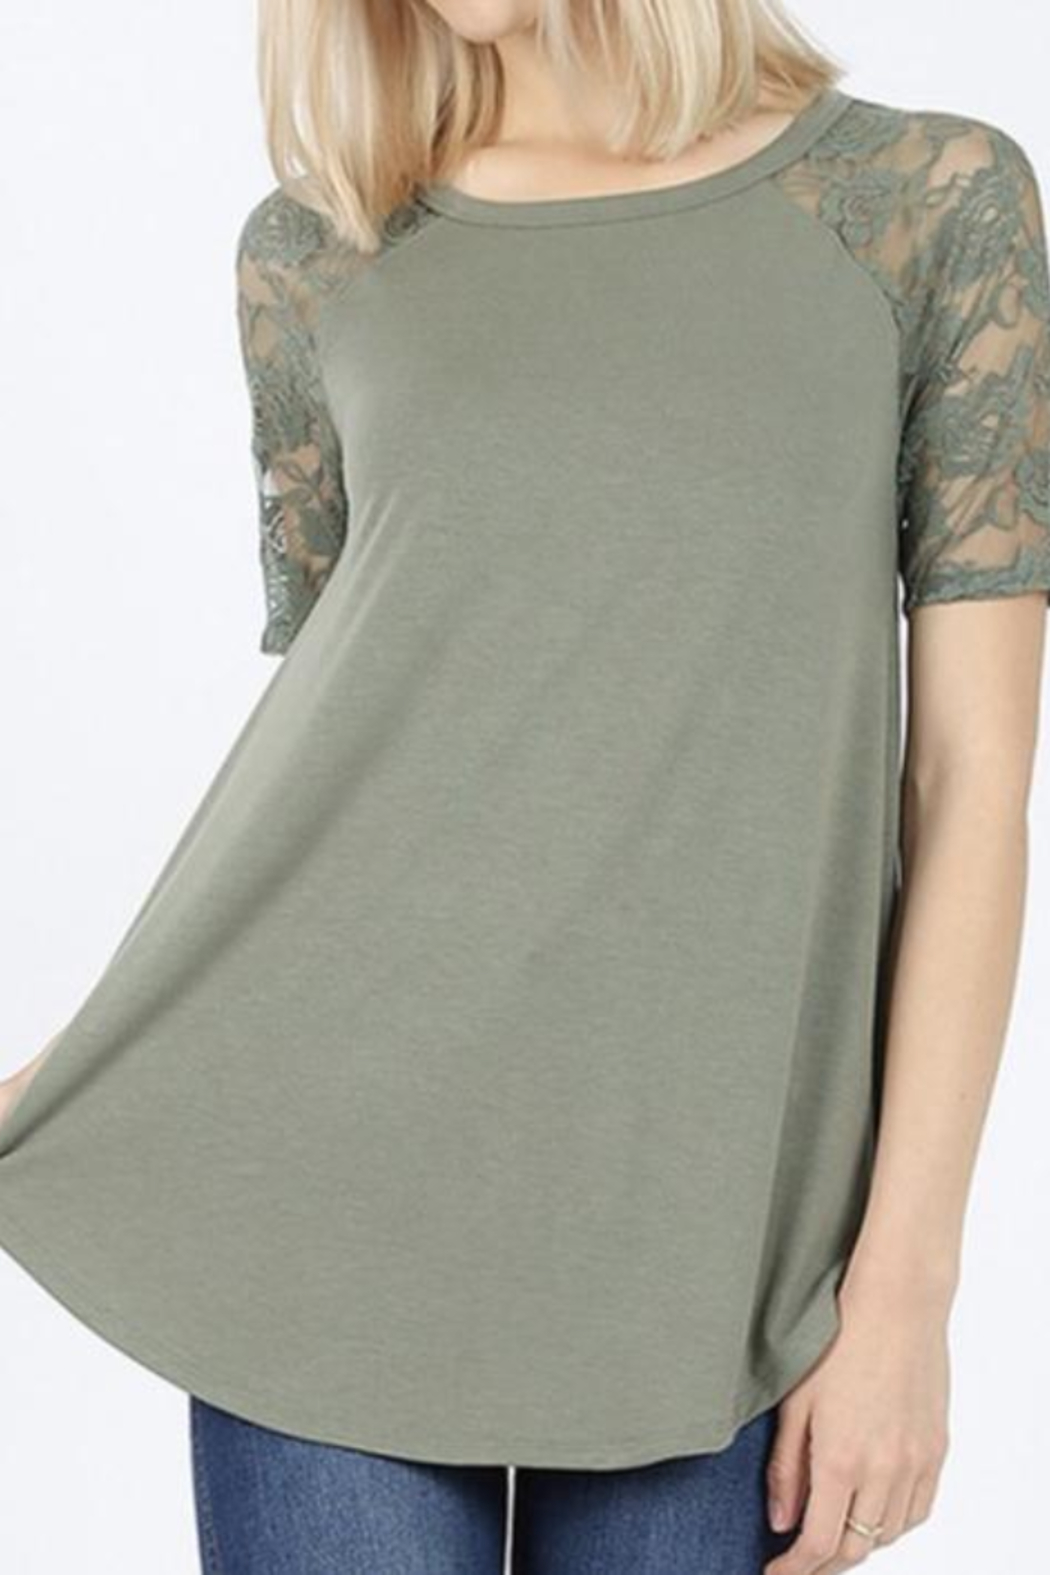 Kindred Mercantile My Fav T Lace Slv Olive Curvy - Main Image